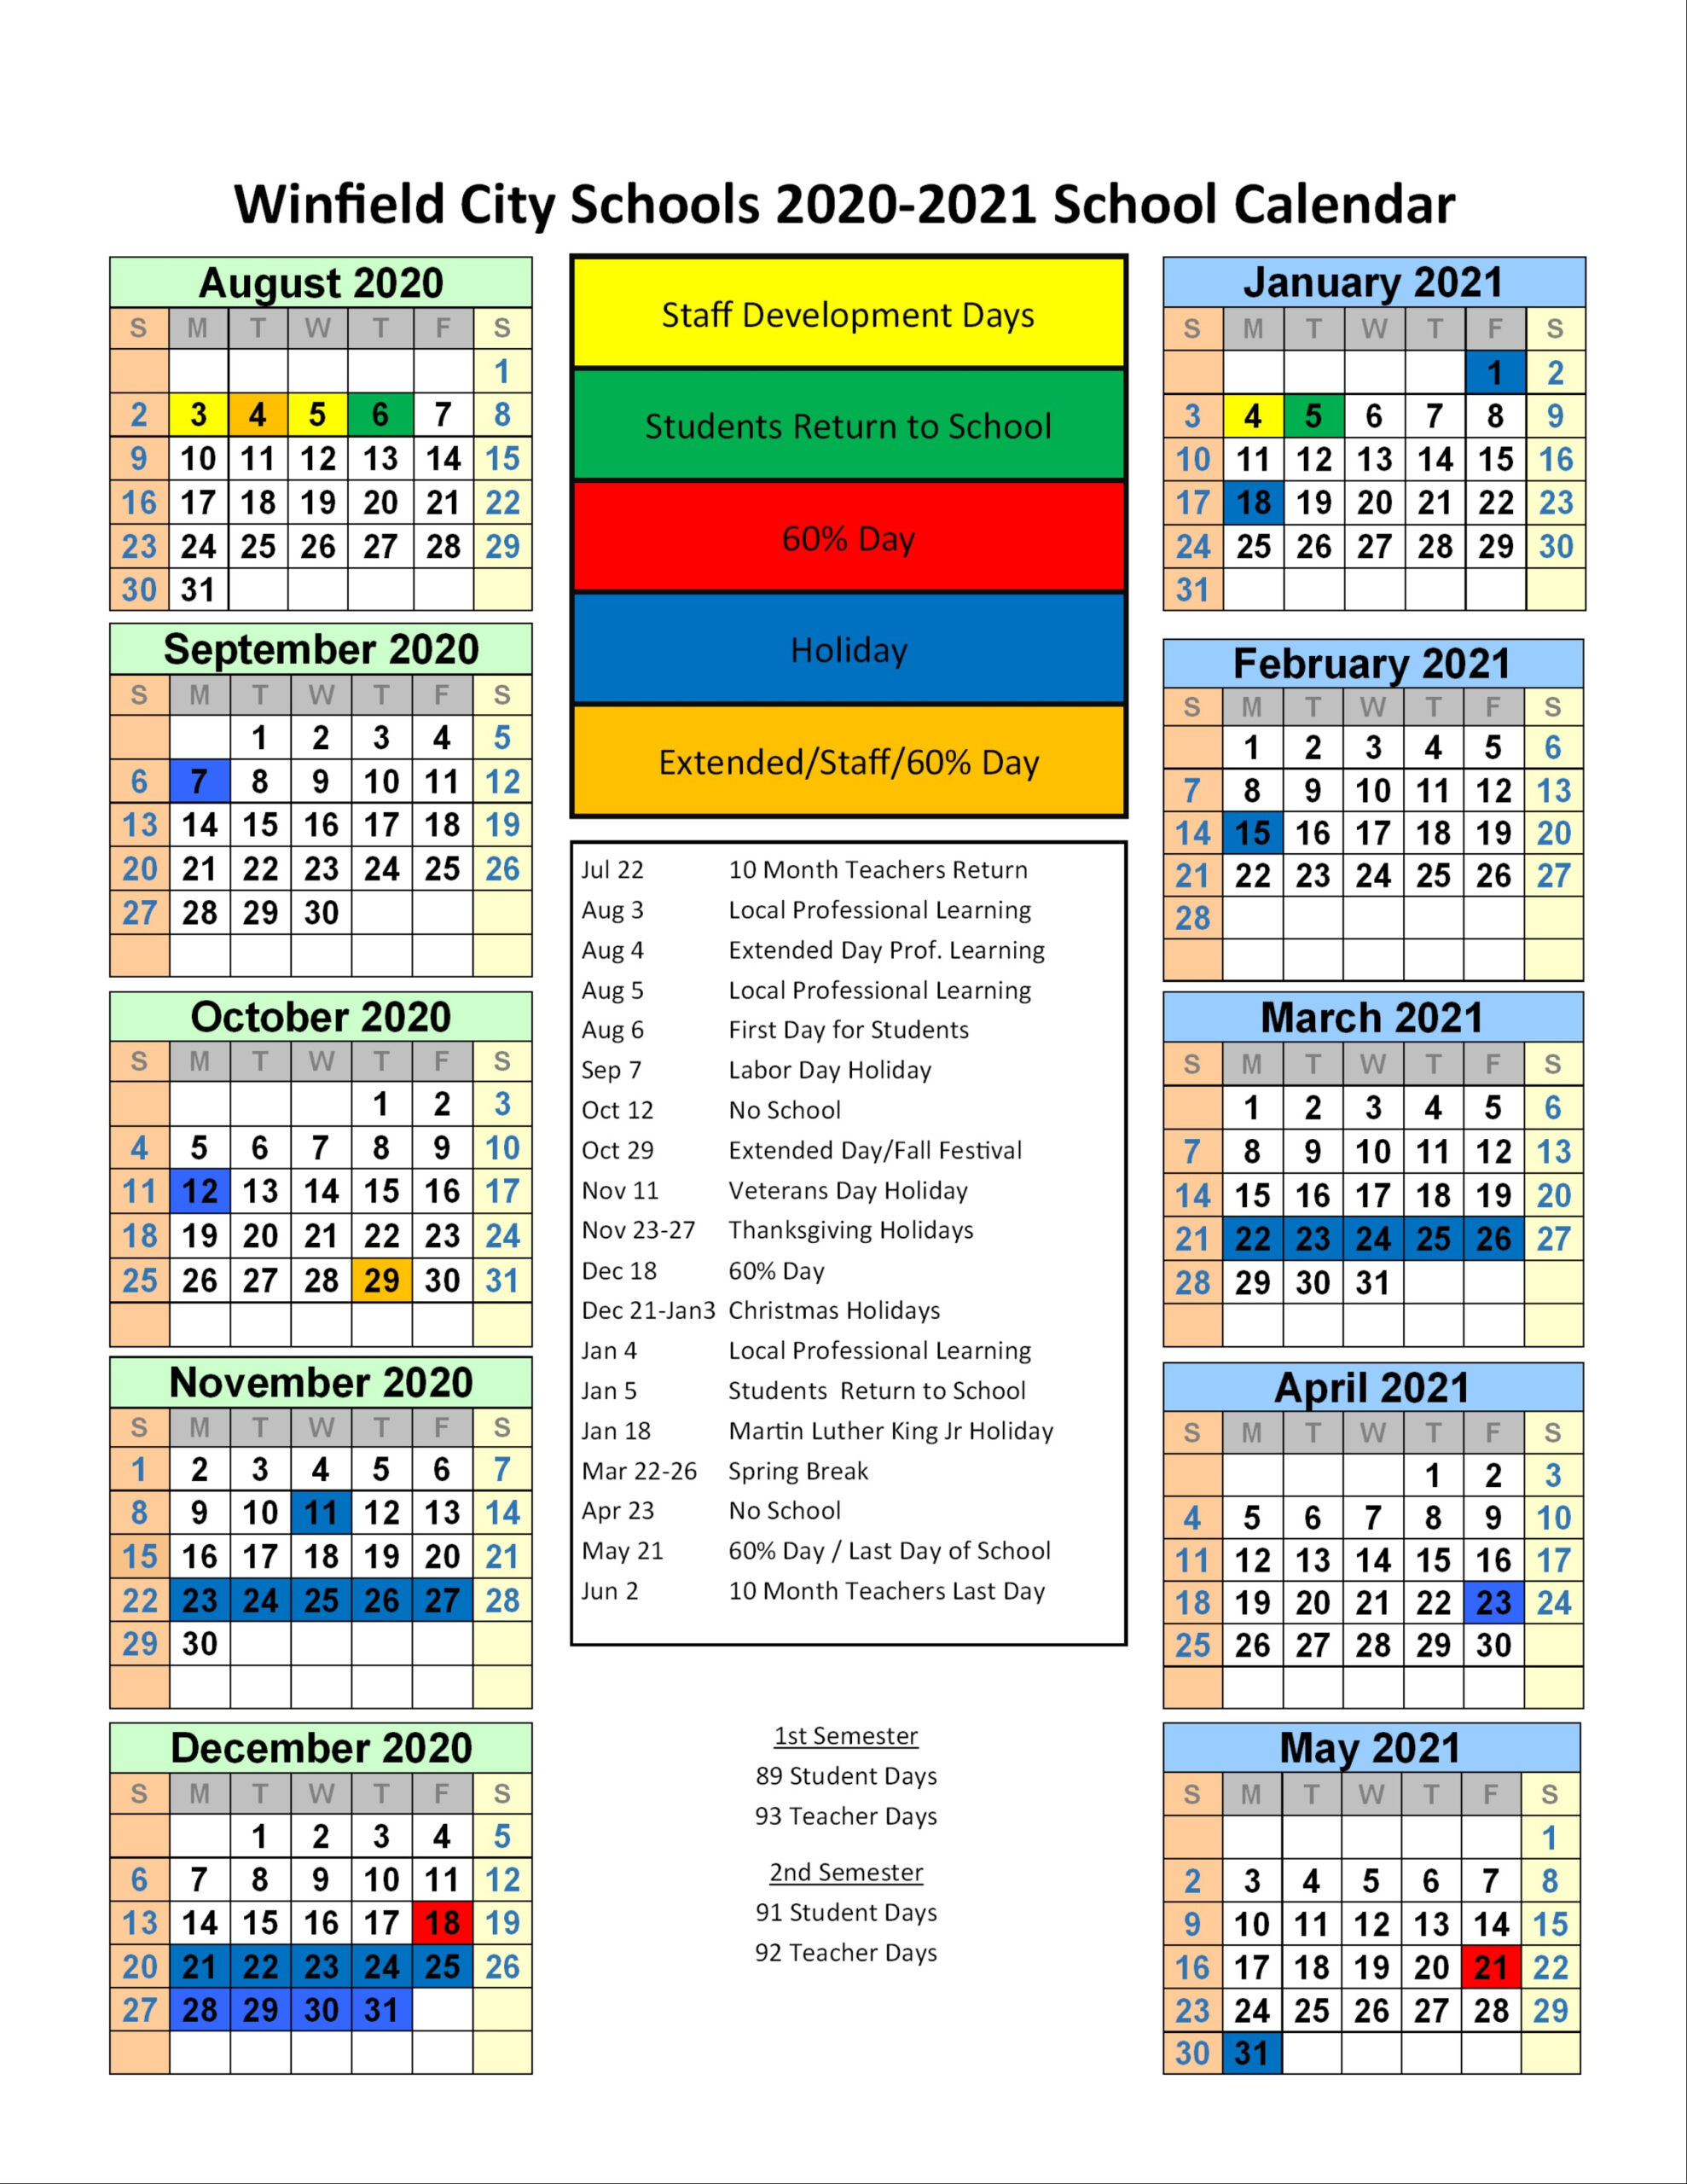 Winfield City Schools Calendar 2020 And 2021 for 2022- 2022 Bakersfield City School Districtcalendar